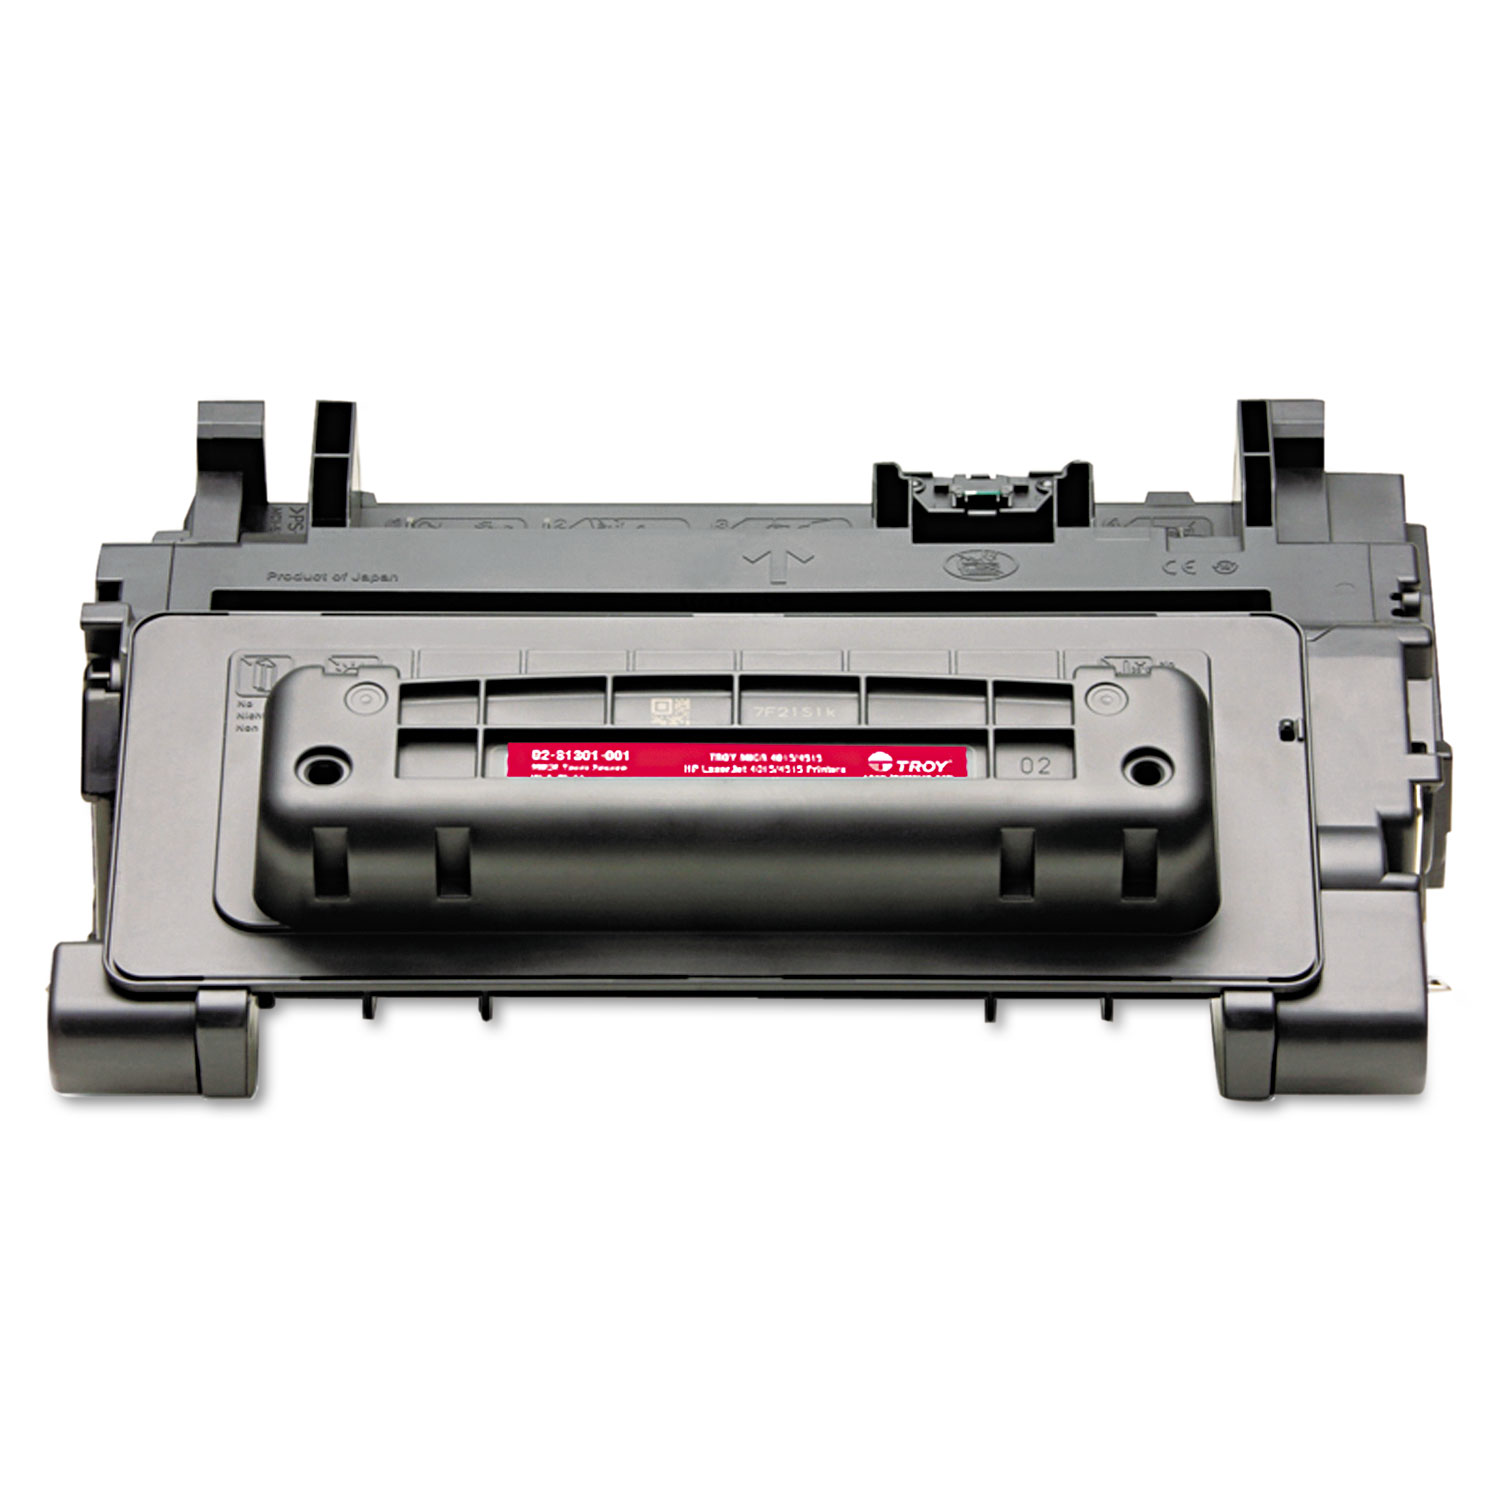 0281301001 64X High-Yield MICR Toner Secure, Alternative for HP CC364X, Black